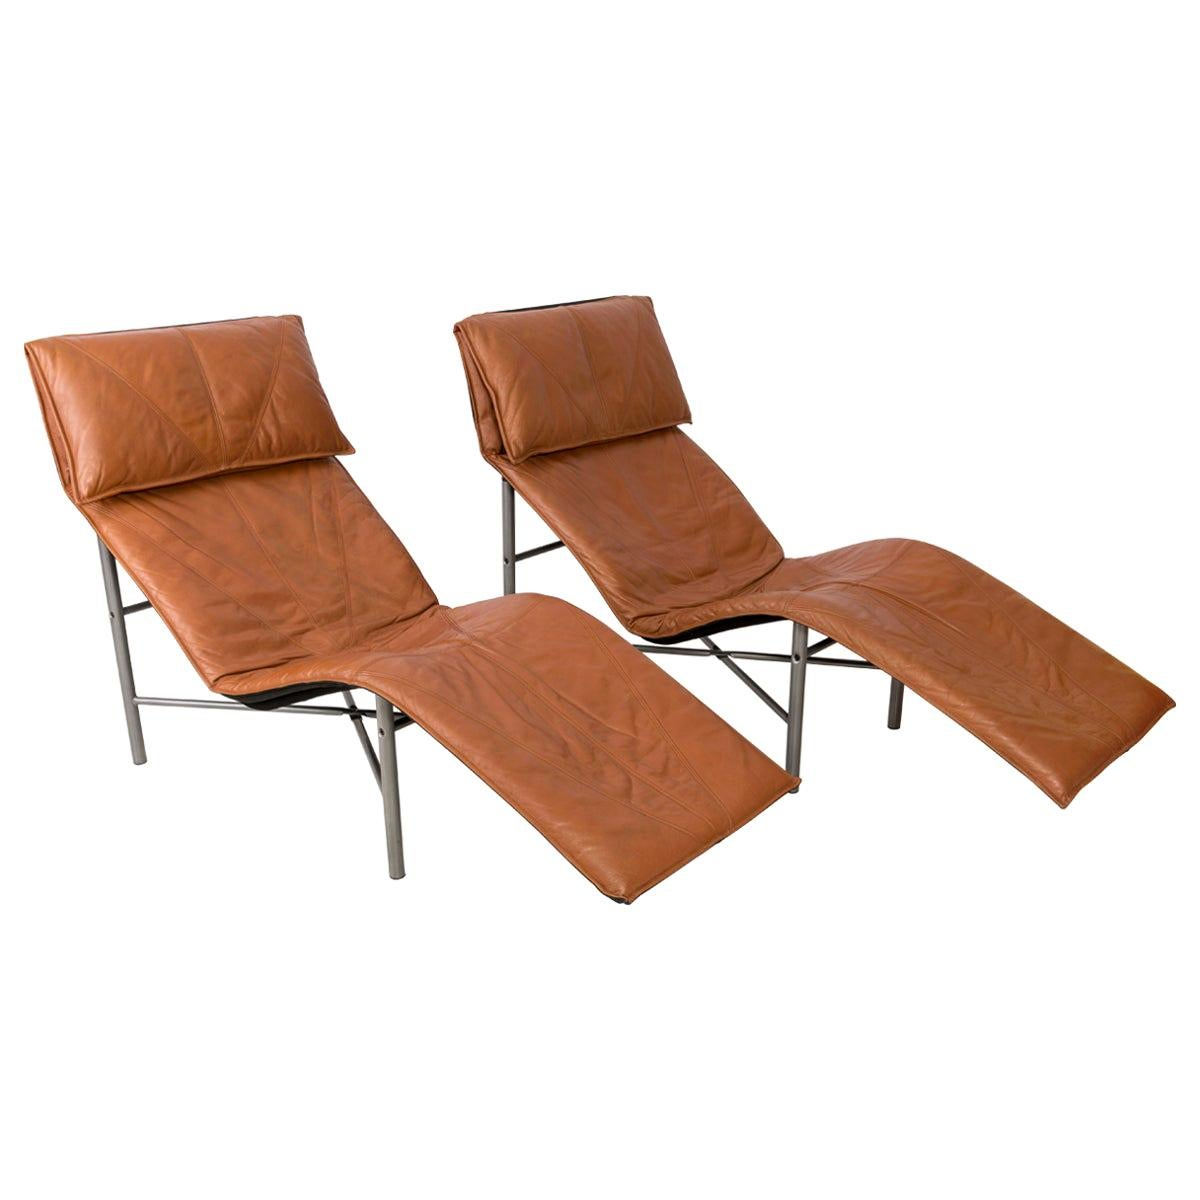 Two Midcentury Danish Modern Leather Chaise Lounge Chairs, Tord Björklund, 1980